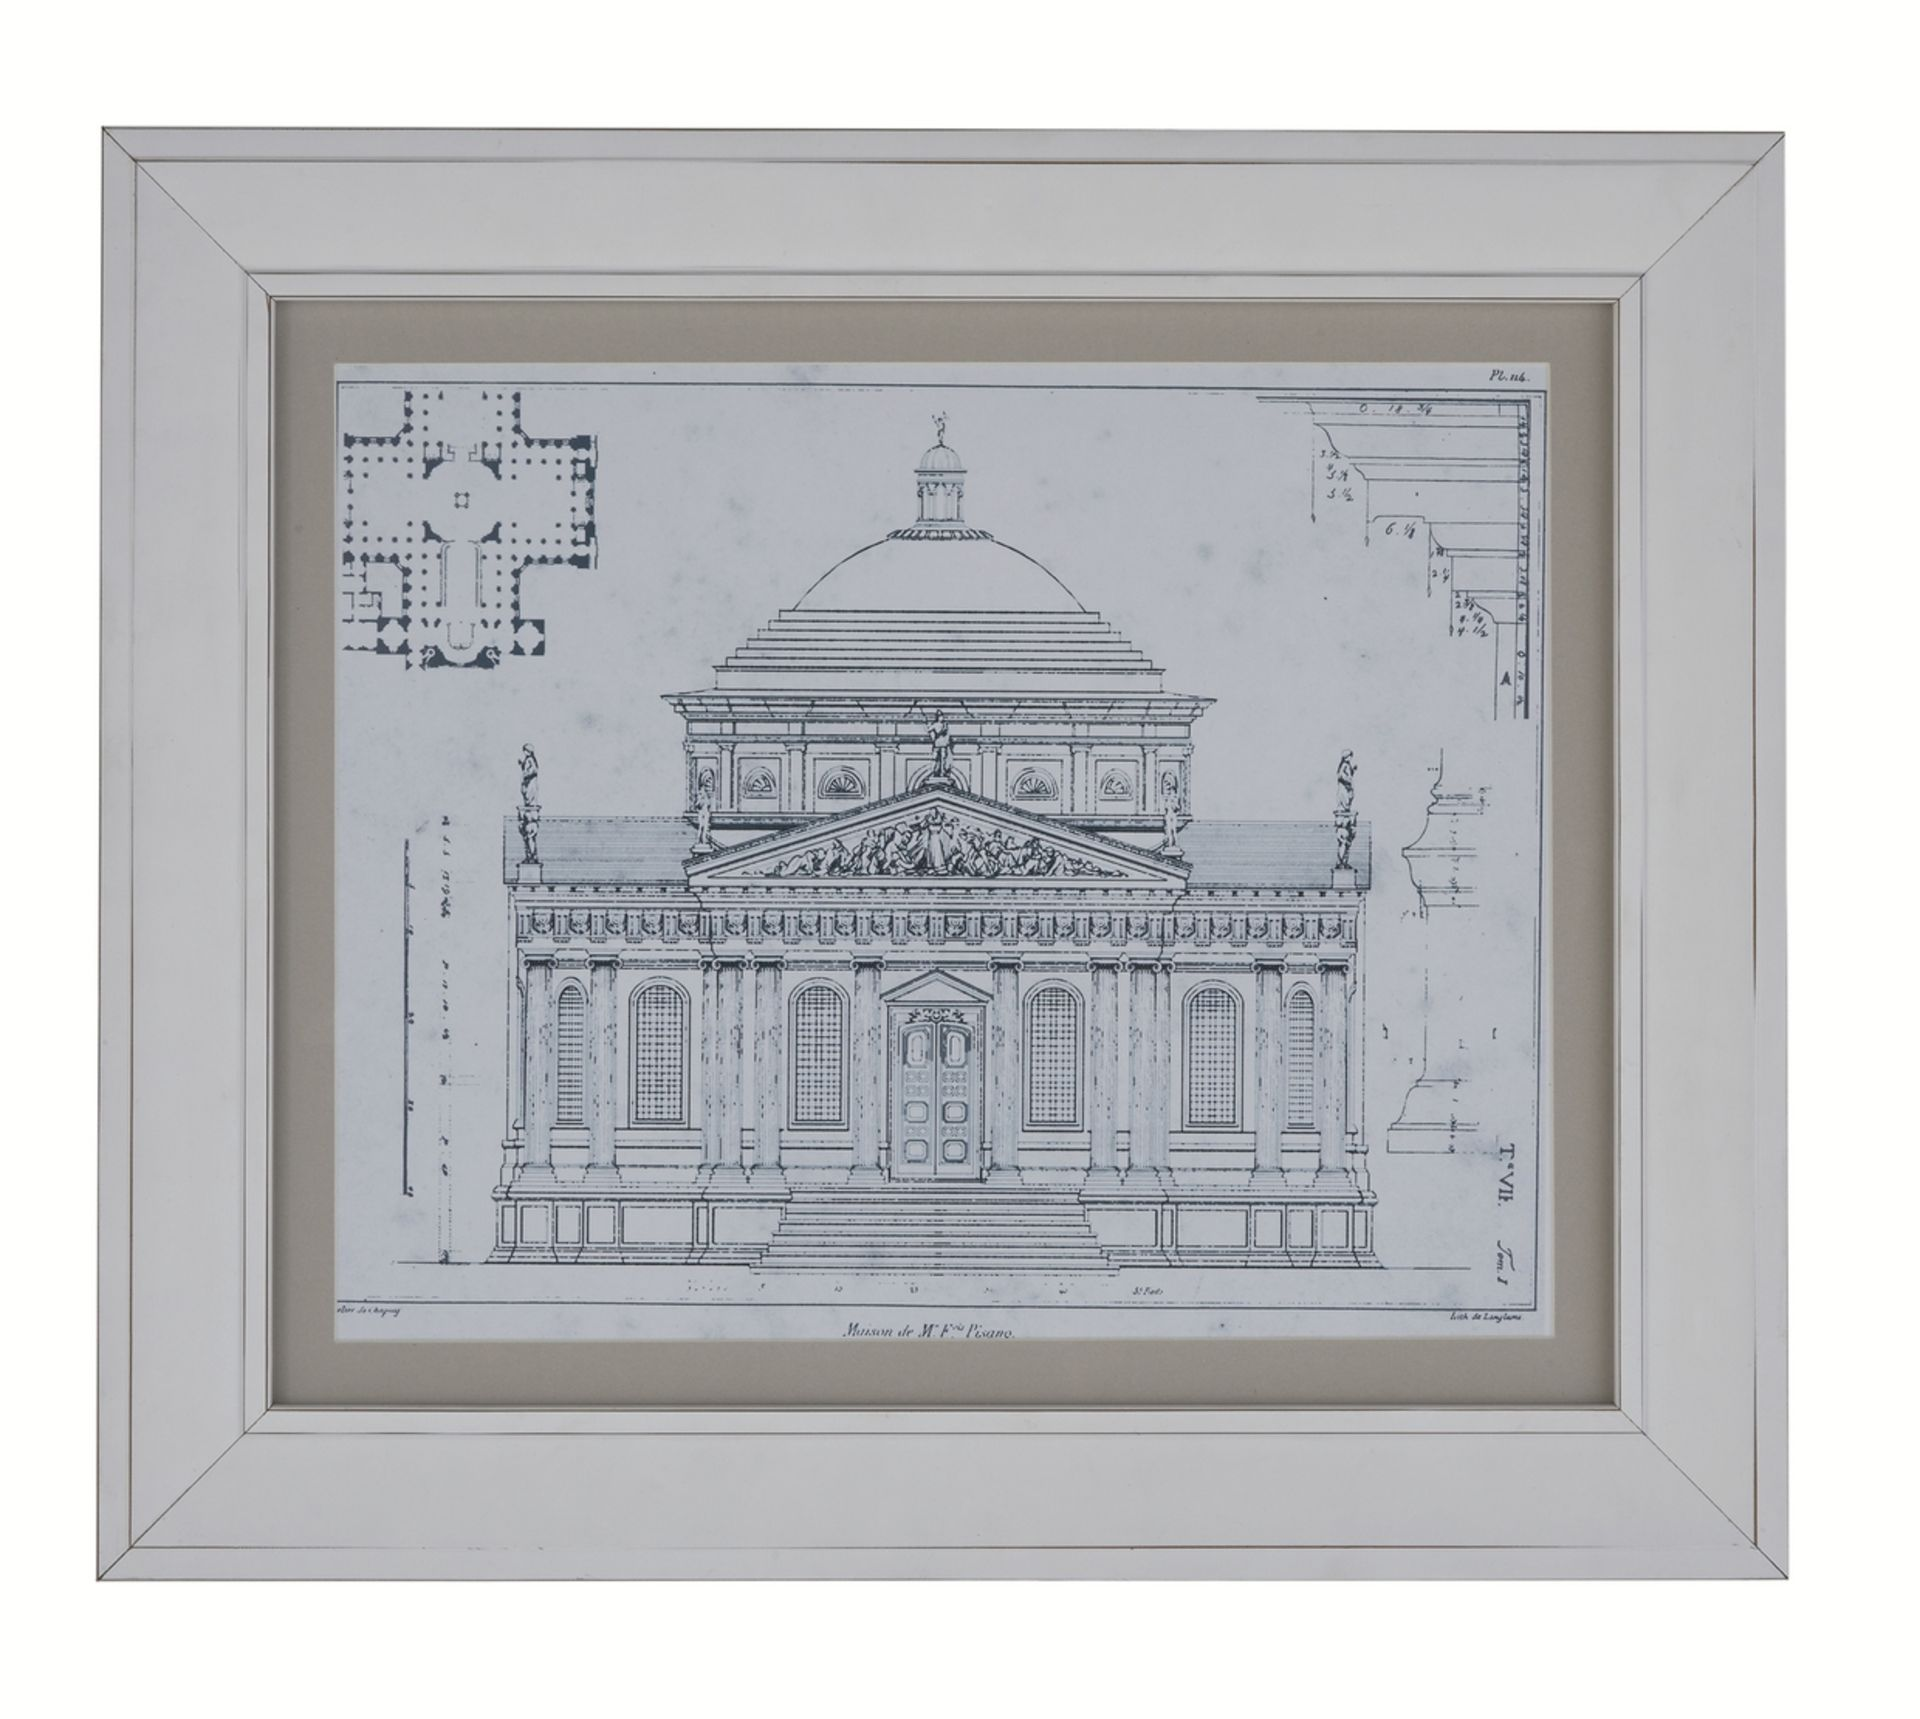 Lot 84 - 87 items Mixed Lot - Brand New Interior Décor WallArt/Canvases from Arthouse, Approx RRP £799.32